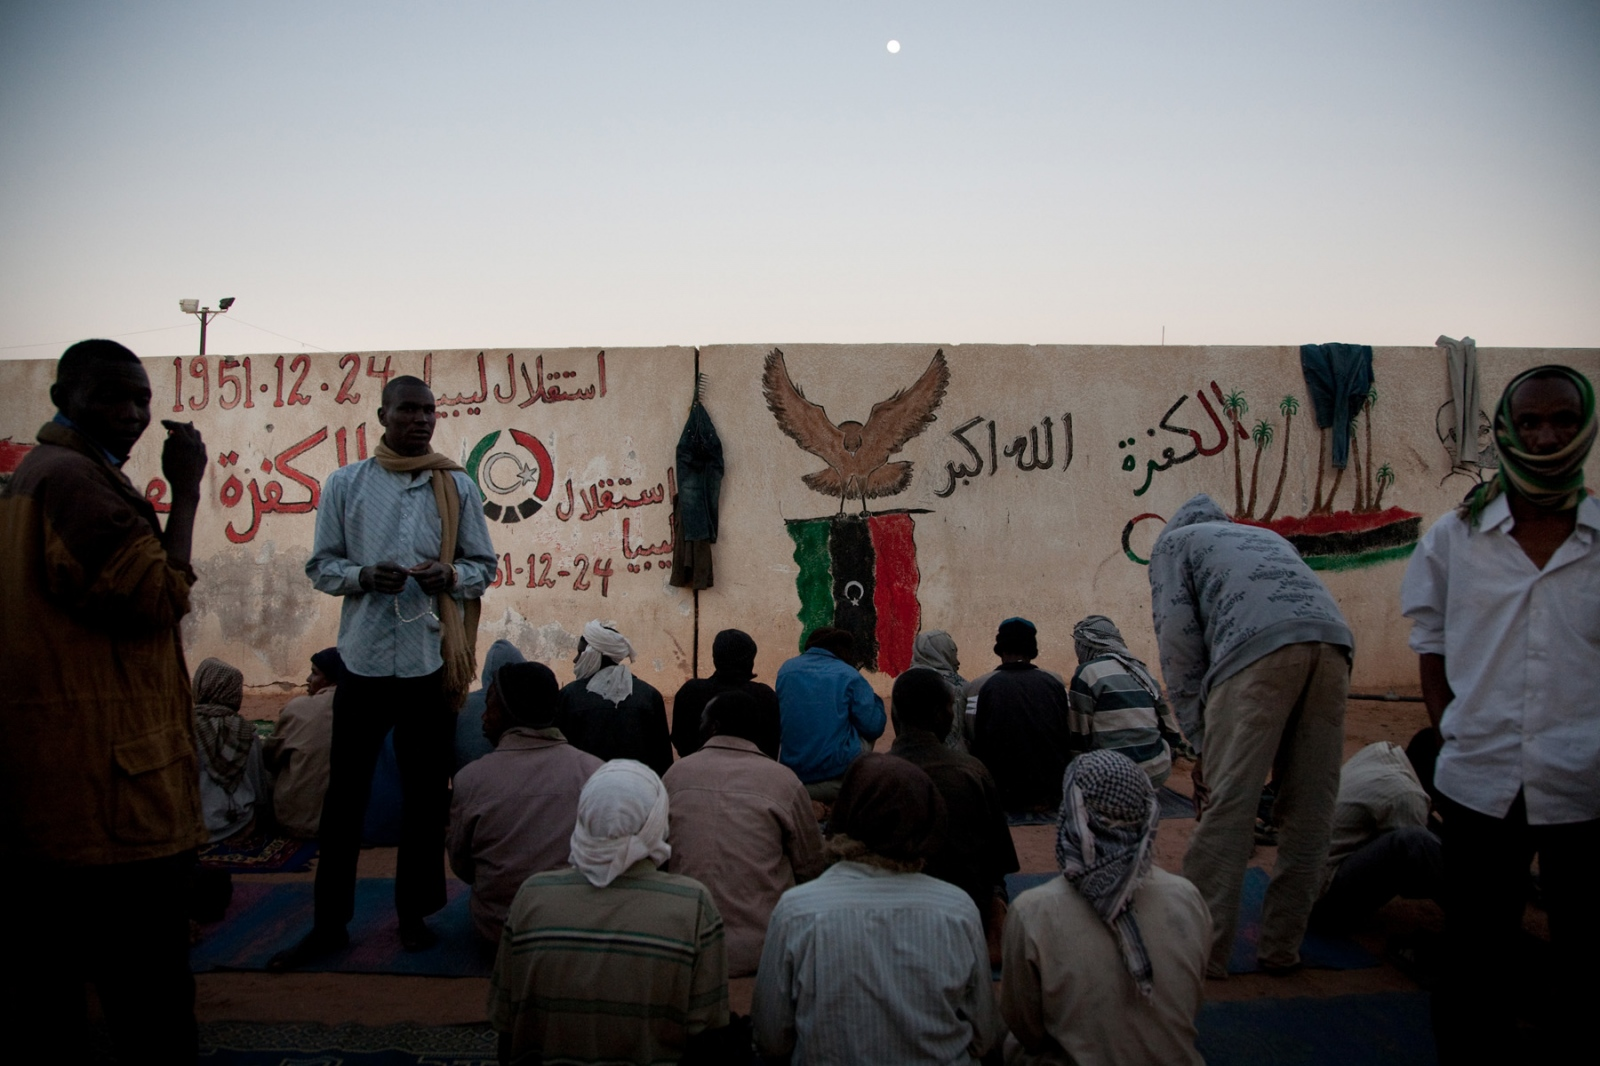 Migrants prepare for evening prayers at the detention facility in Kufra, southern Libya, on March 6, 2012.